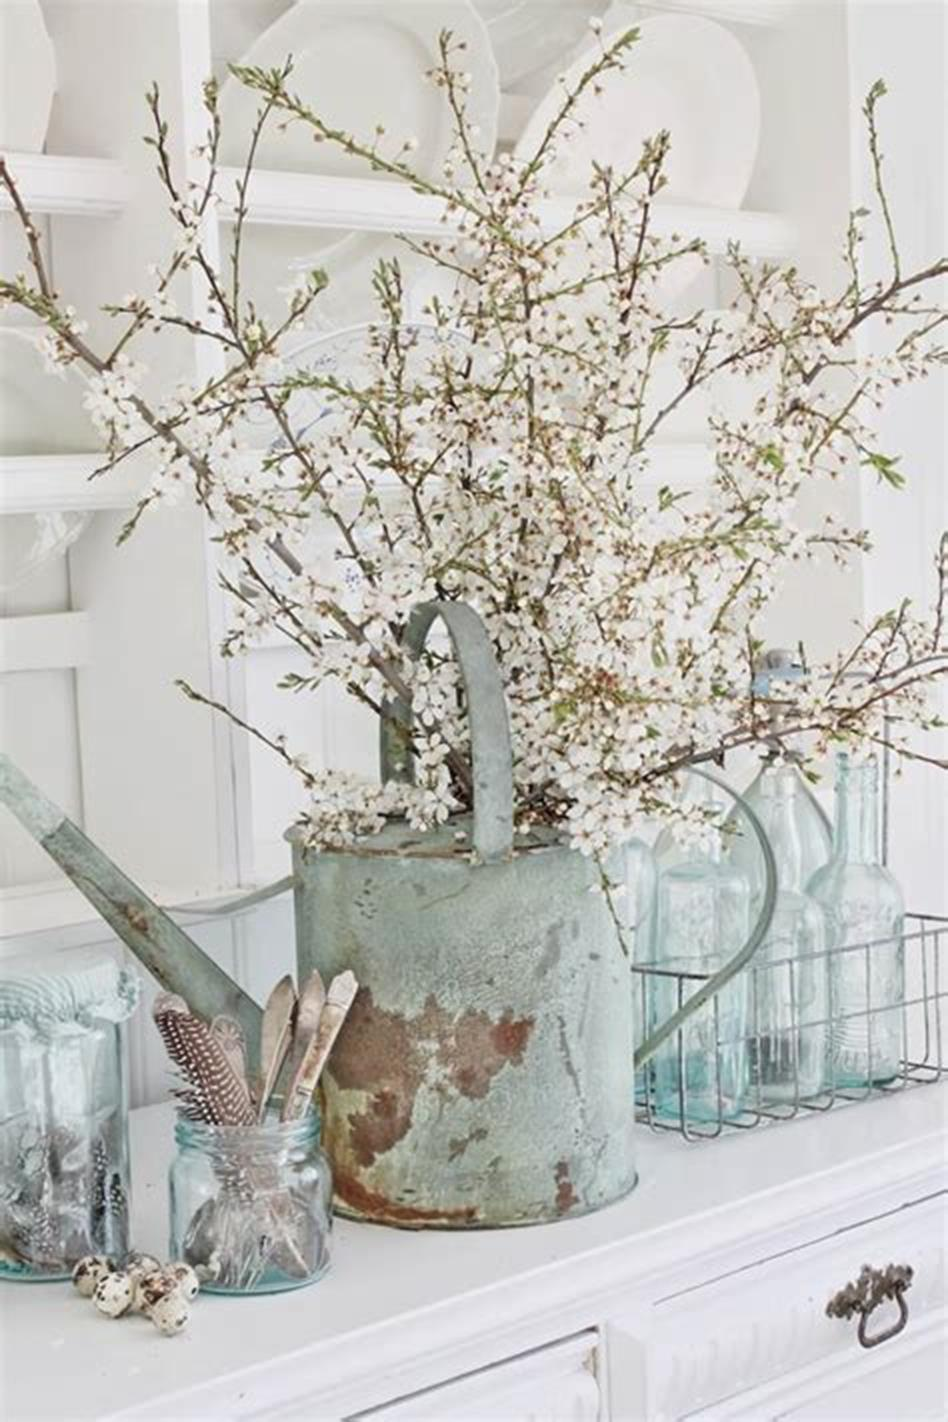 42 DIY Beautiful Vintage Spring Decorations Ideas You Will Love 25